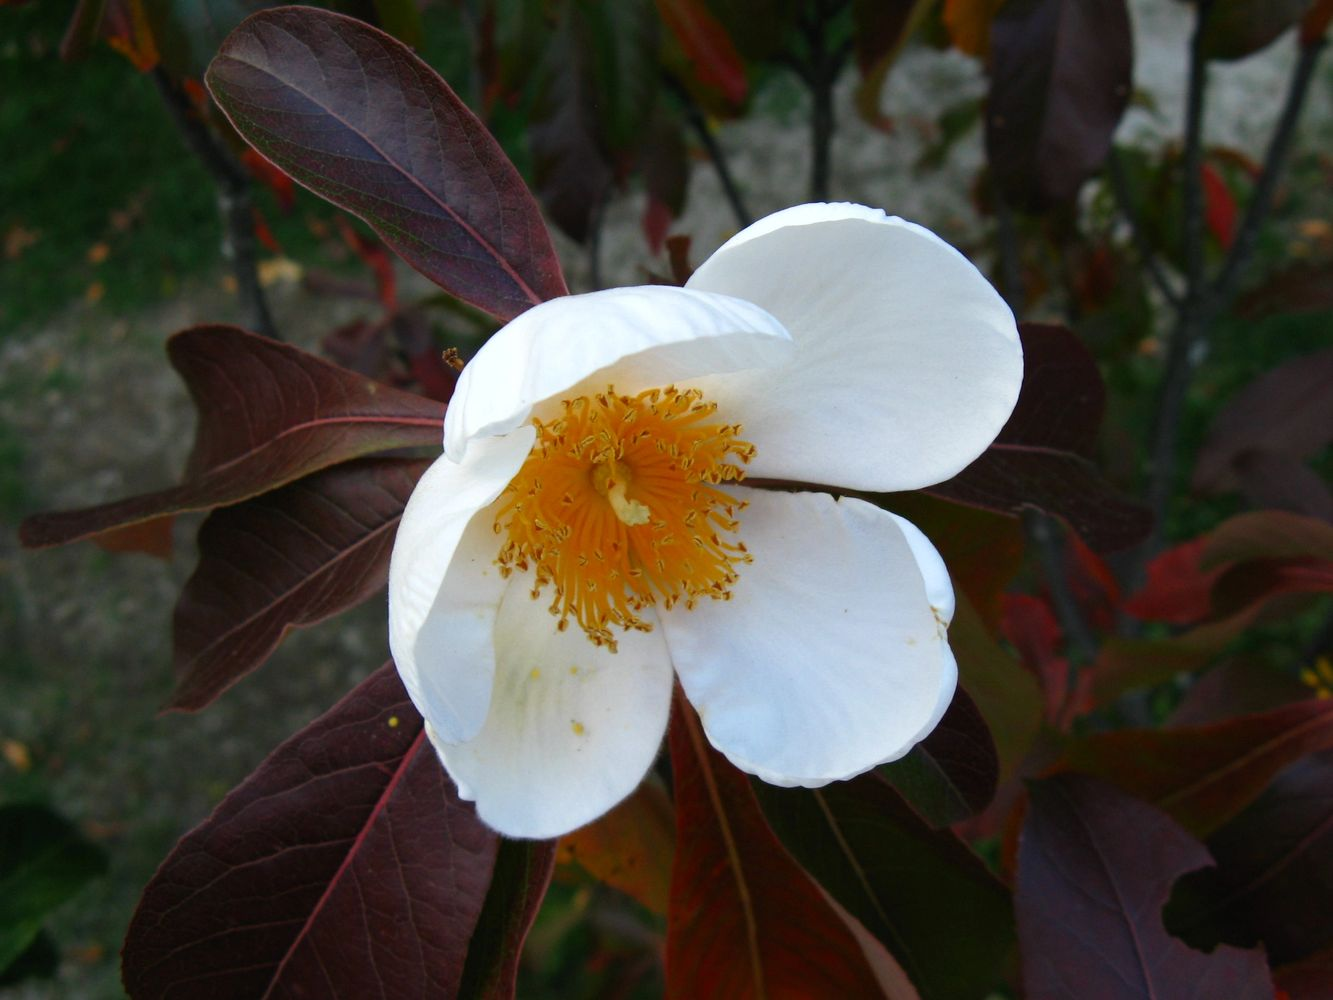 Franklinia alatamaha is one of the many rare and outstanding ornamental plants found at Homegrown